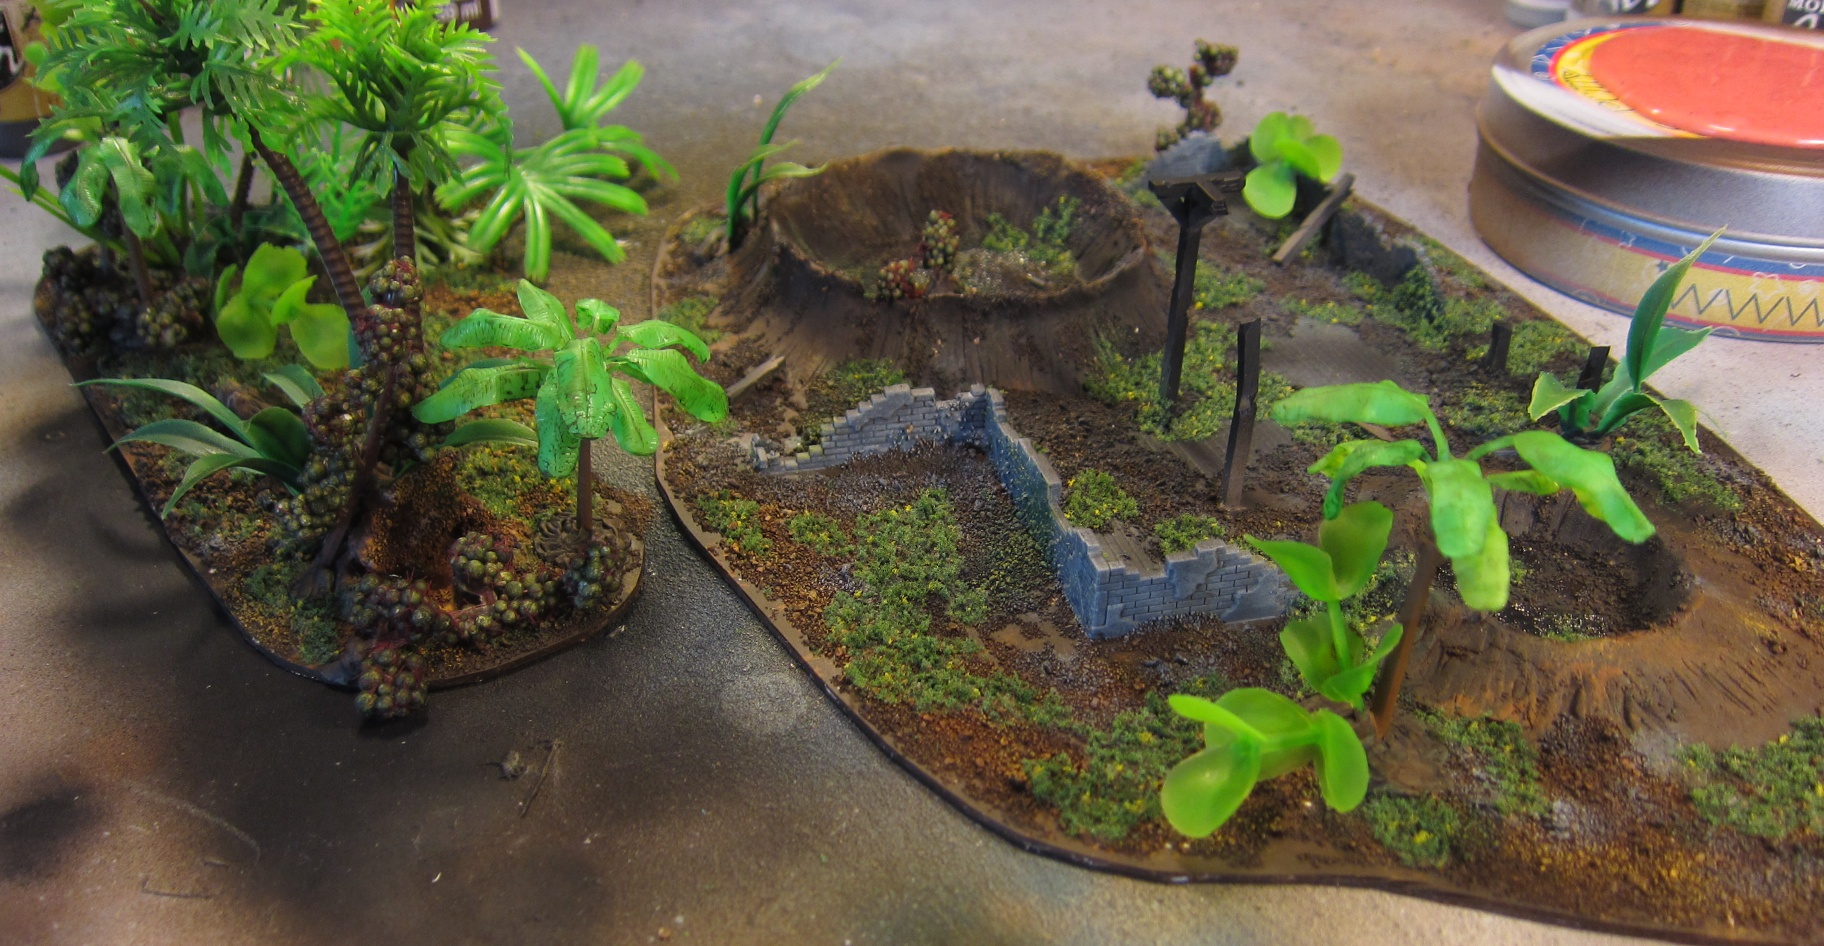 39 Jungle And Ruined Building Terrain For Warhammer 40k on ruins texture